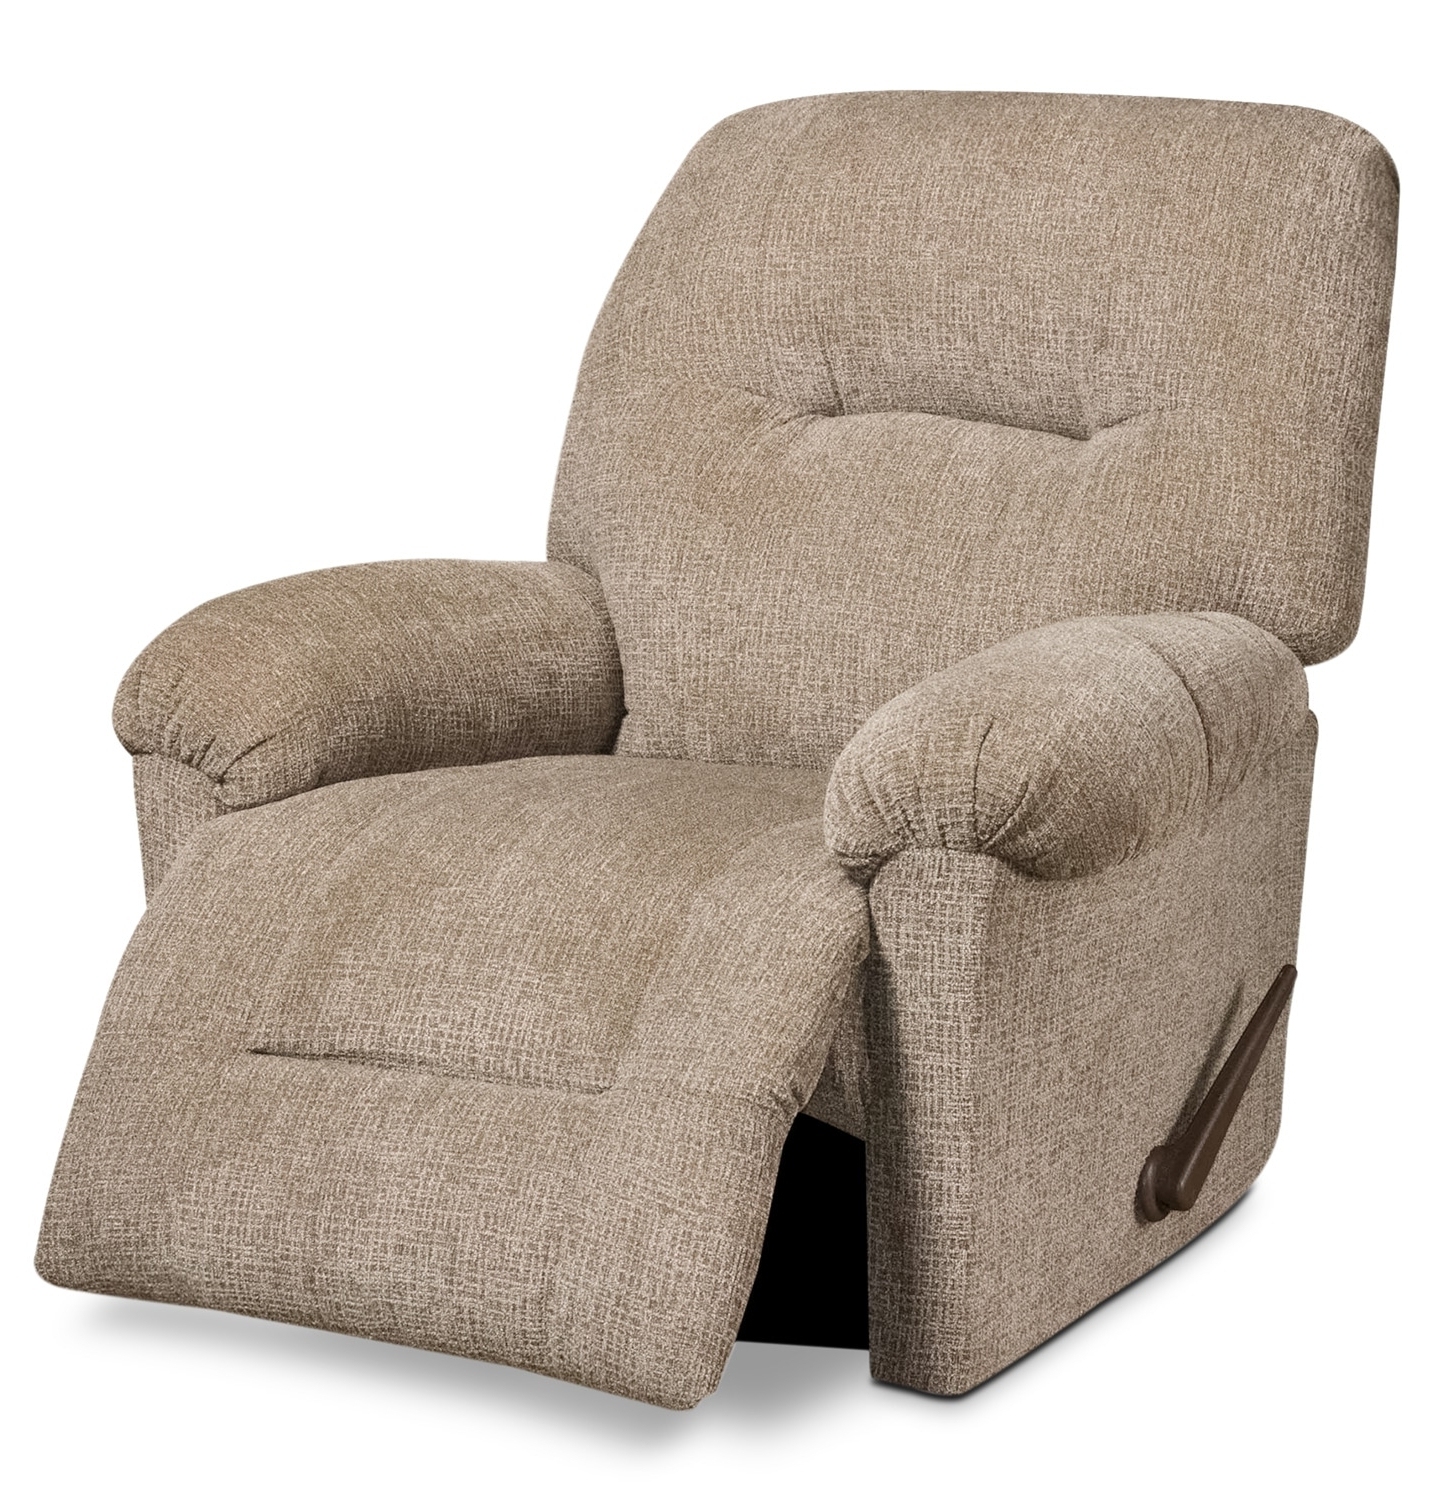 Nanaimo Sectional Sofas Pertaining To Famous Reclining Chairs (View 15 of 15)